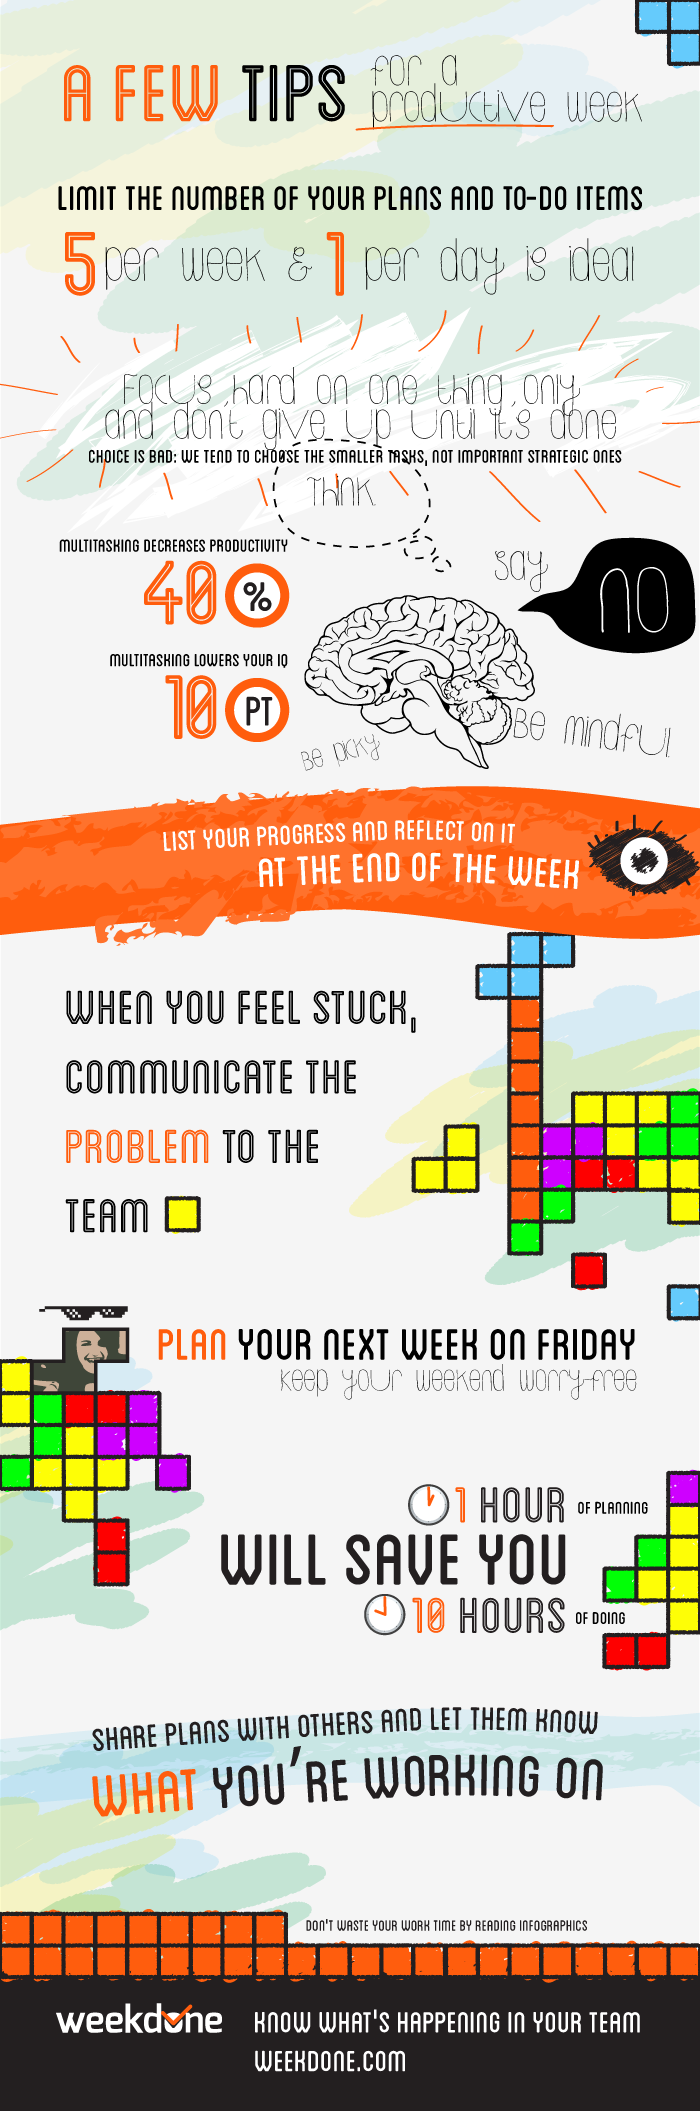 Top 10 ways for a productive week